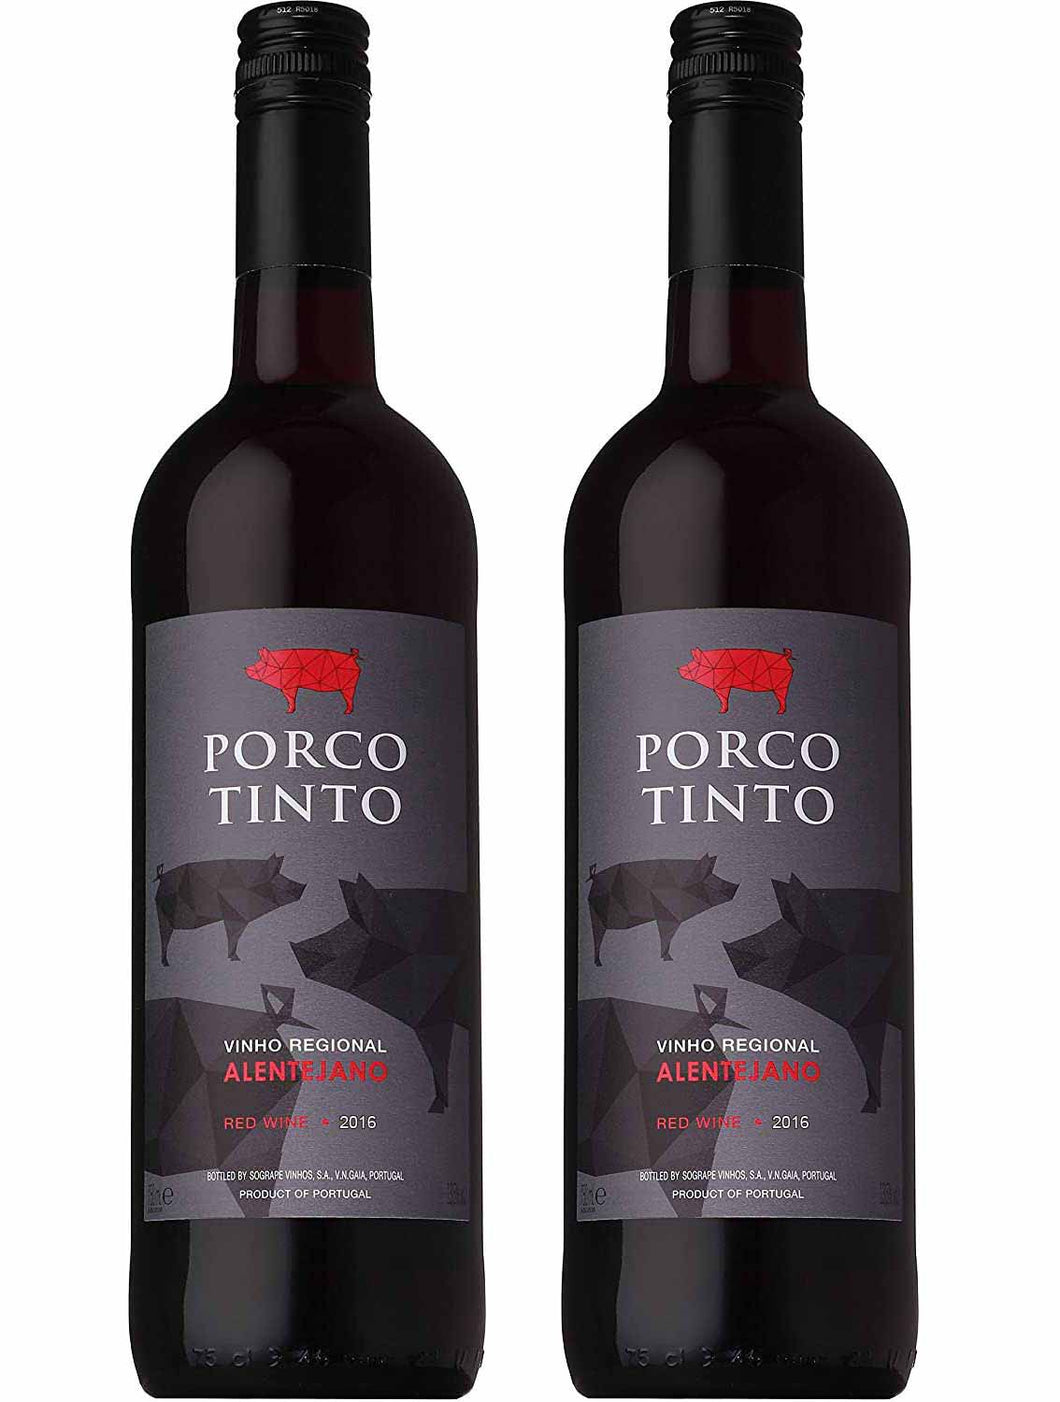 Porco Tinto Vinho Regional Alentejano 750ml Buy1 Take1